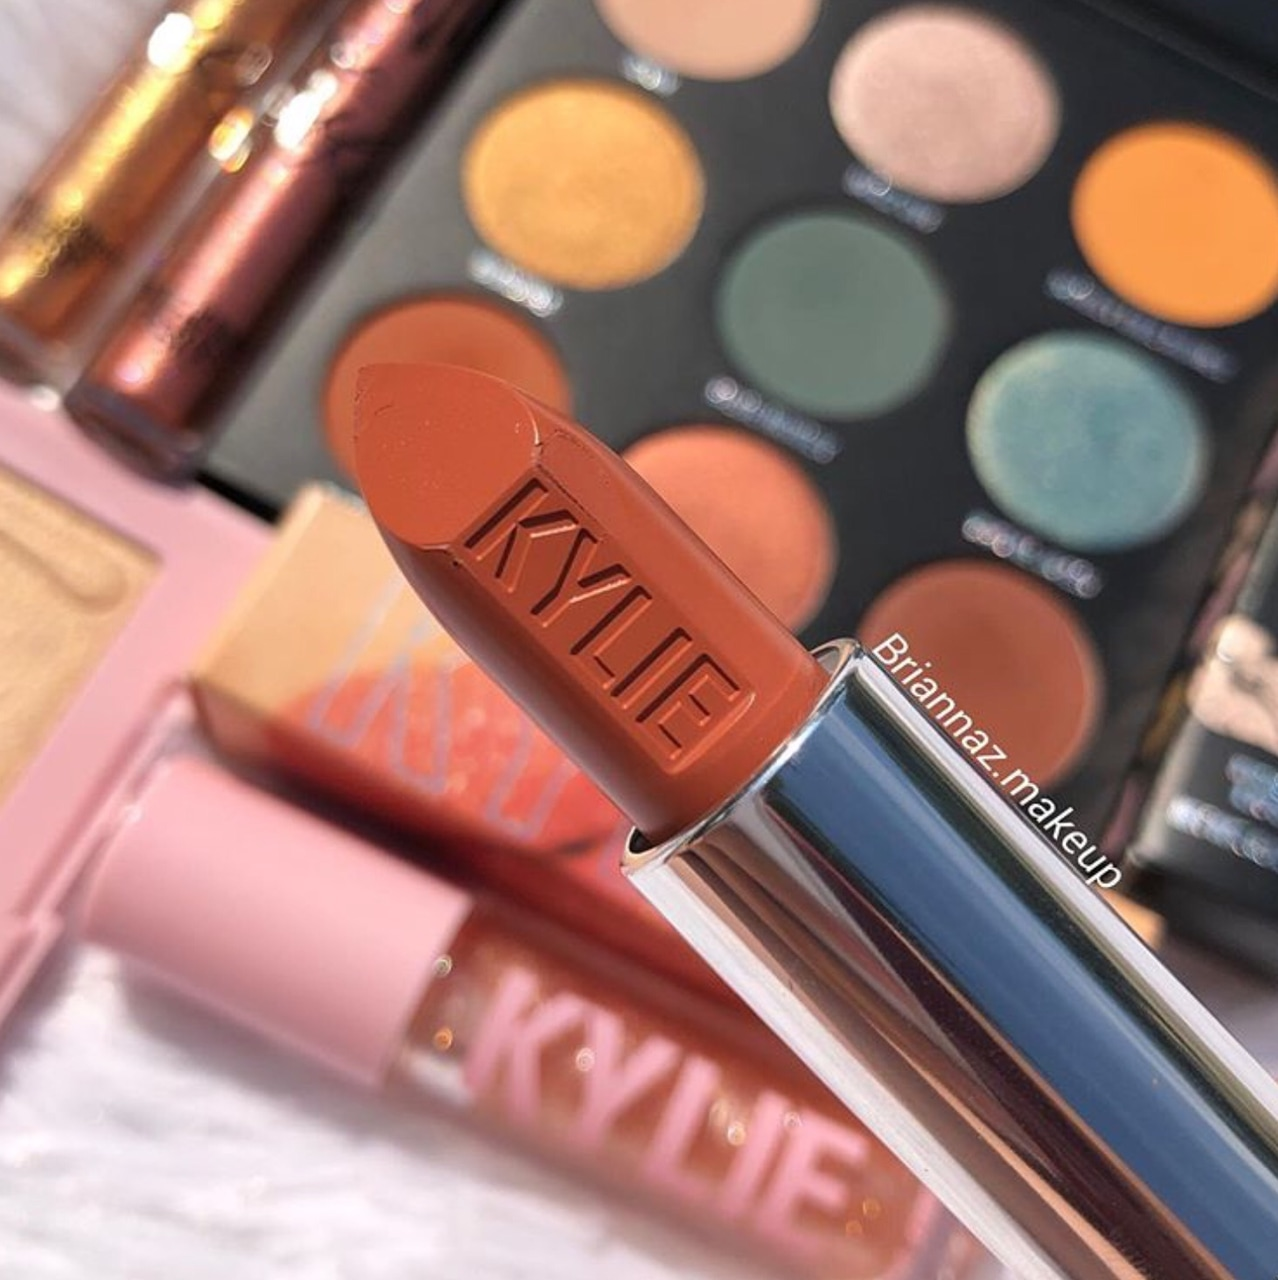 palette, lipstick, kylie cosmetics and kylie jenner